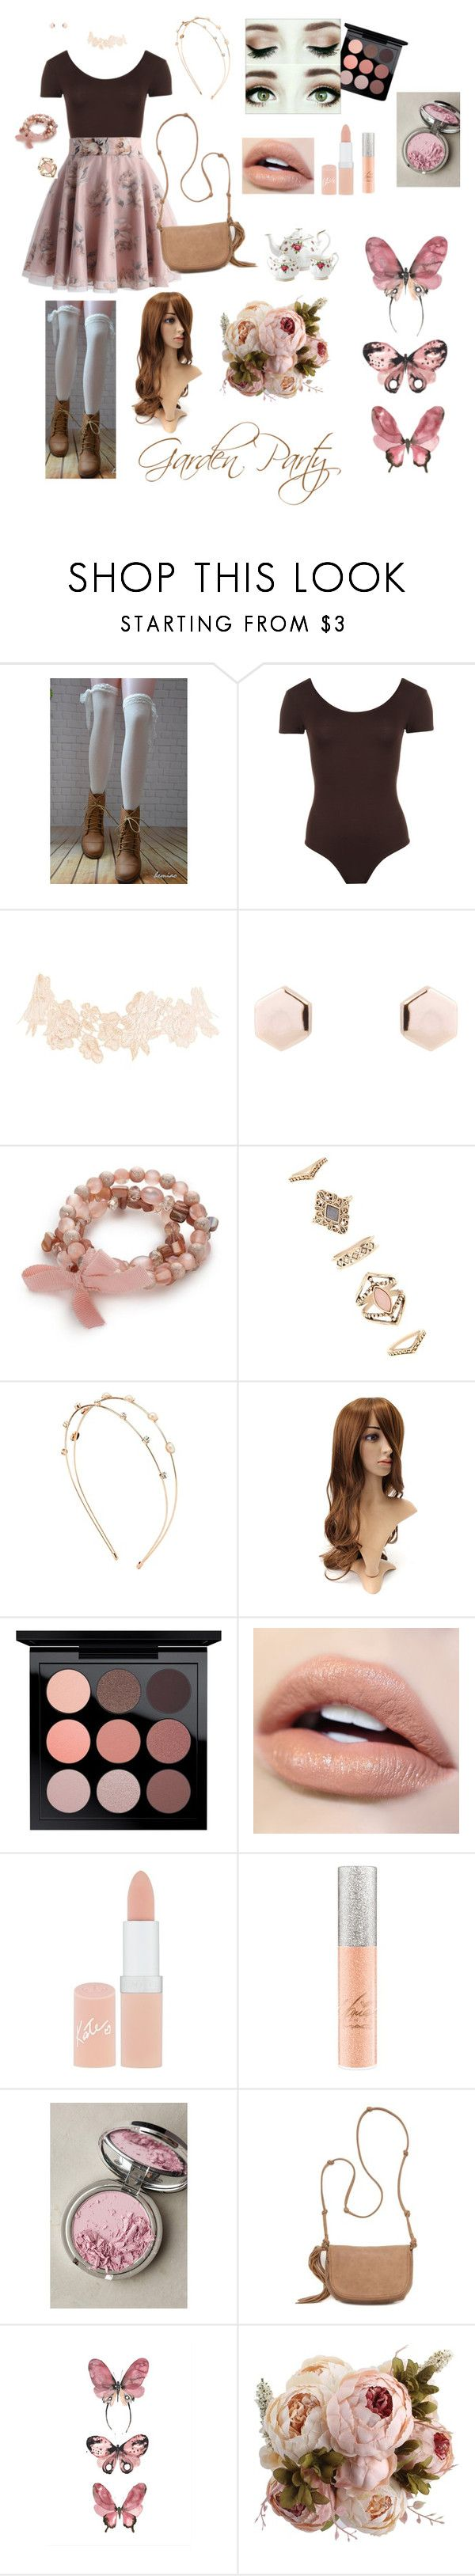 """""""Garden Party"""" by trin101915 ❤ liked on Polyvore featuring WearAll, Charlotte Russe, Kim Rogers, Forever 21, MAC Cosmetics, Rimmel, FACE Stockholm, Red Camel and Royal Albert"""